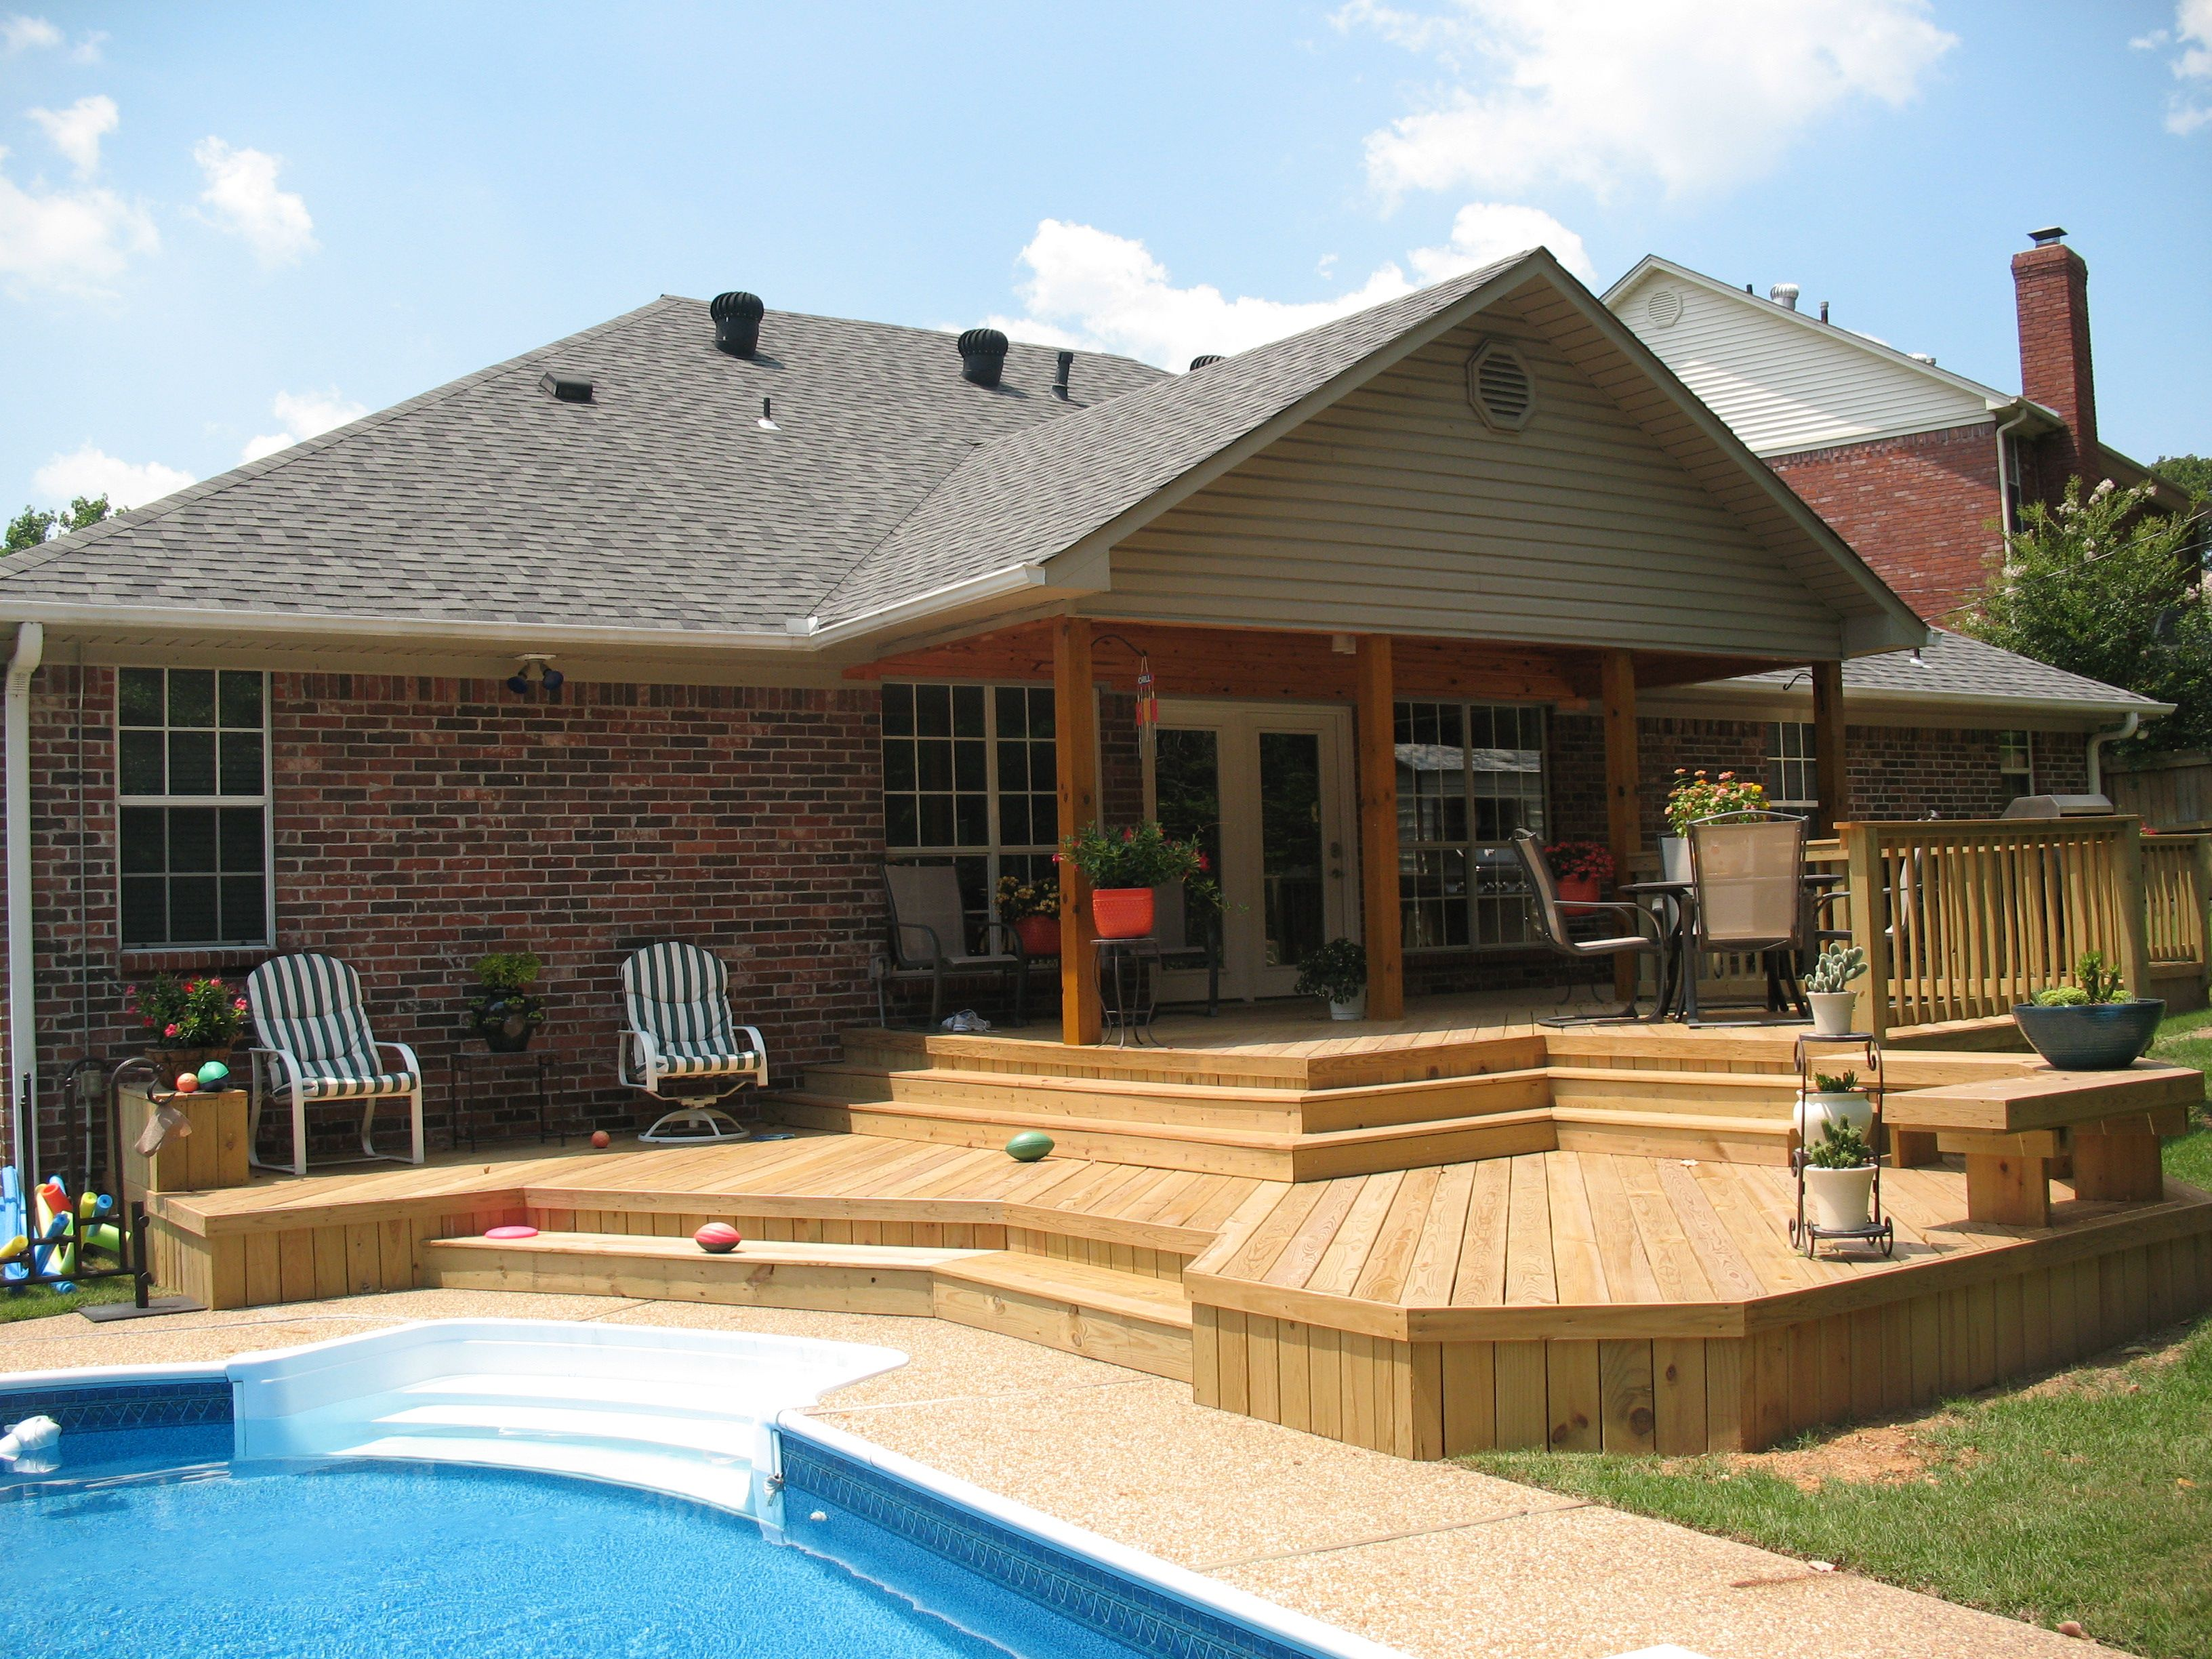 Deck Design Ideas Pool Deck Multi Level Deck Deck